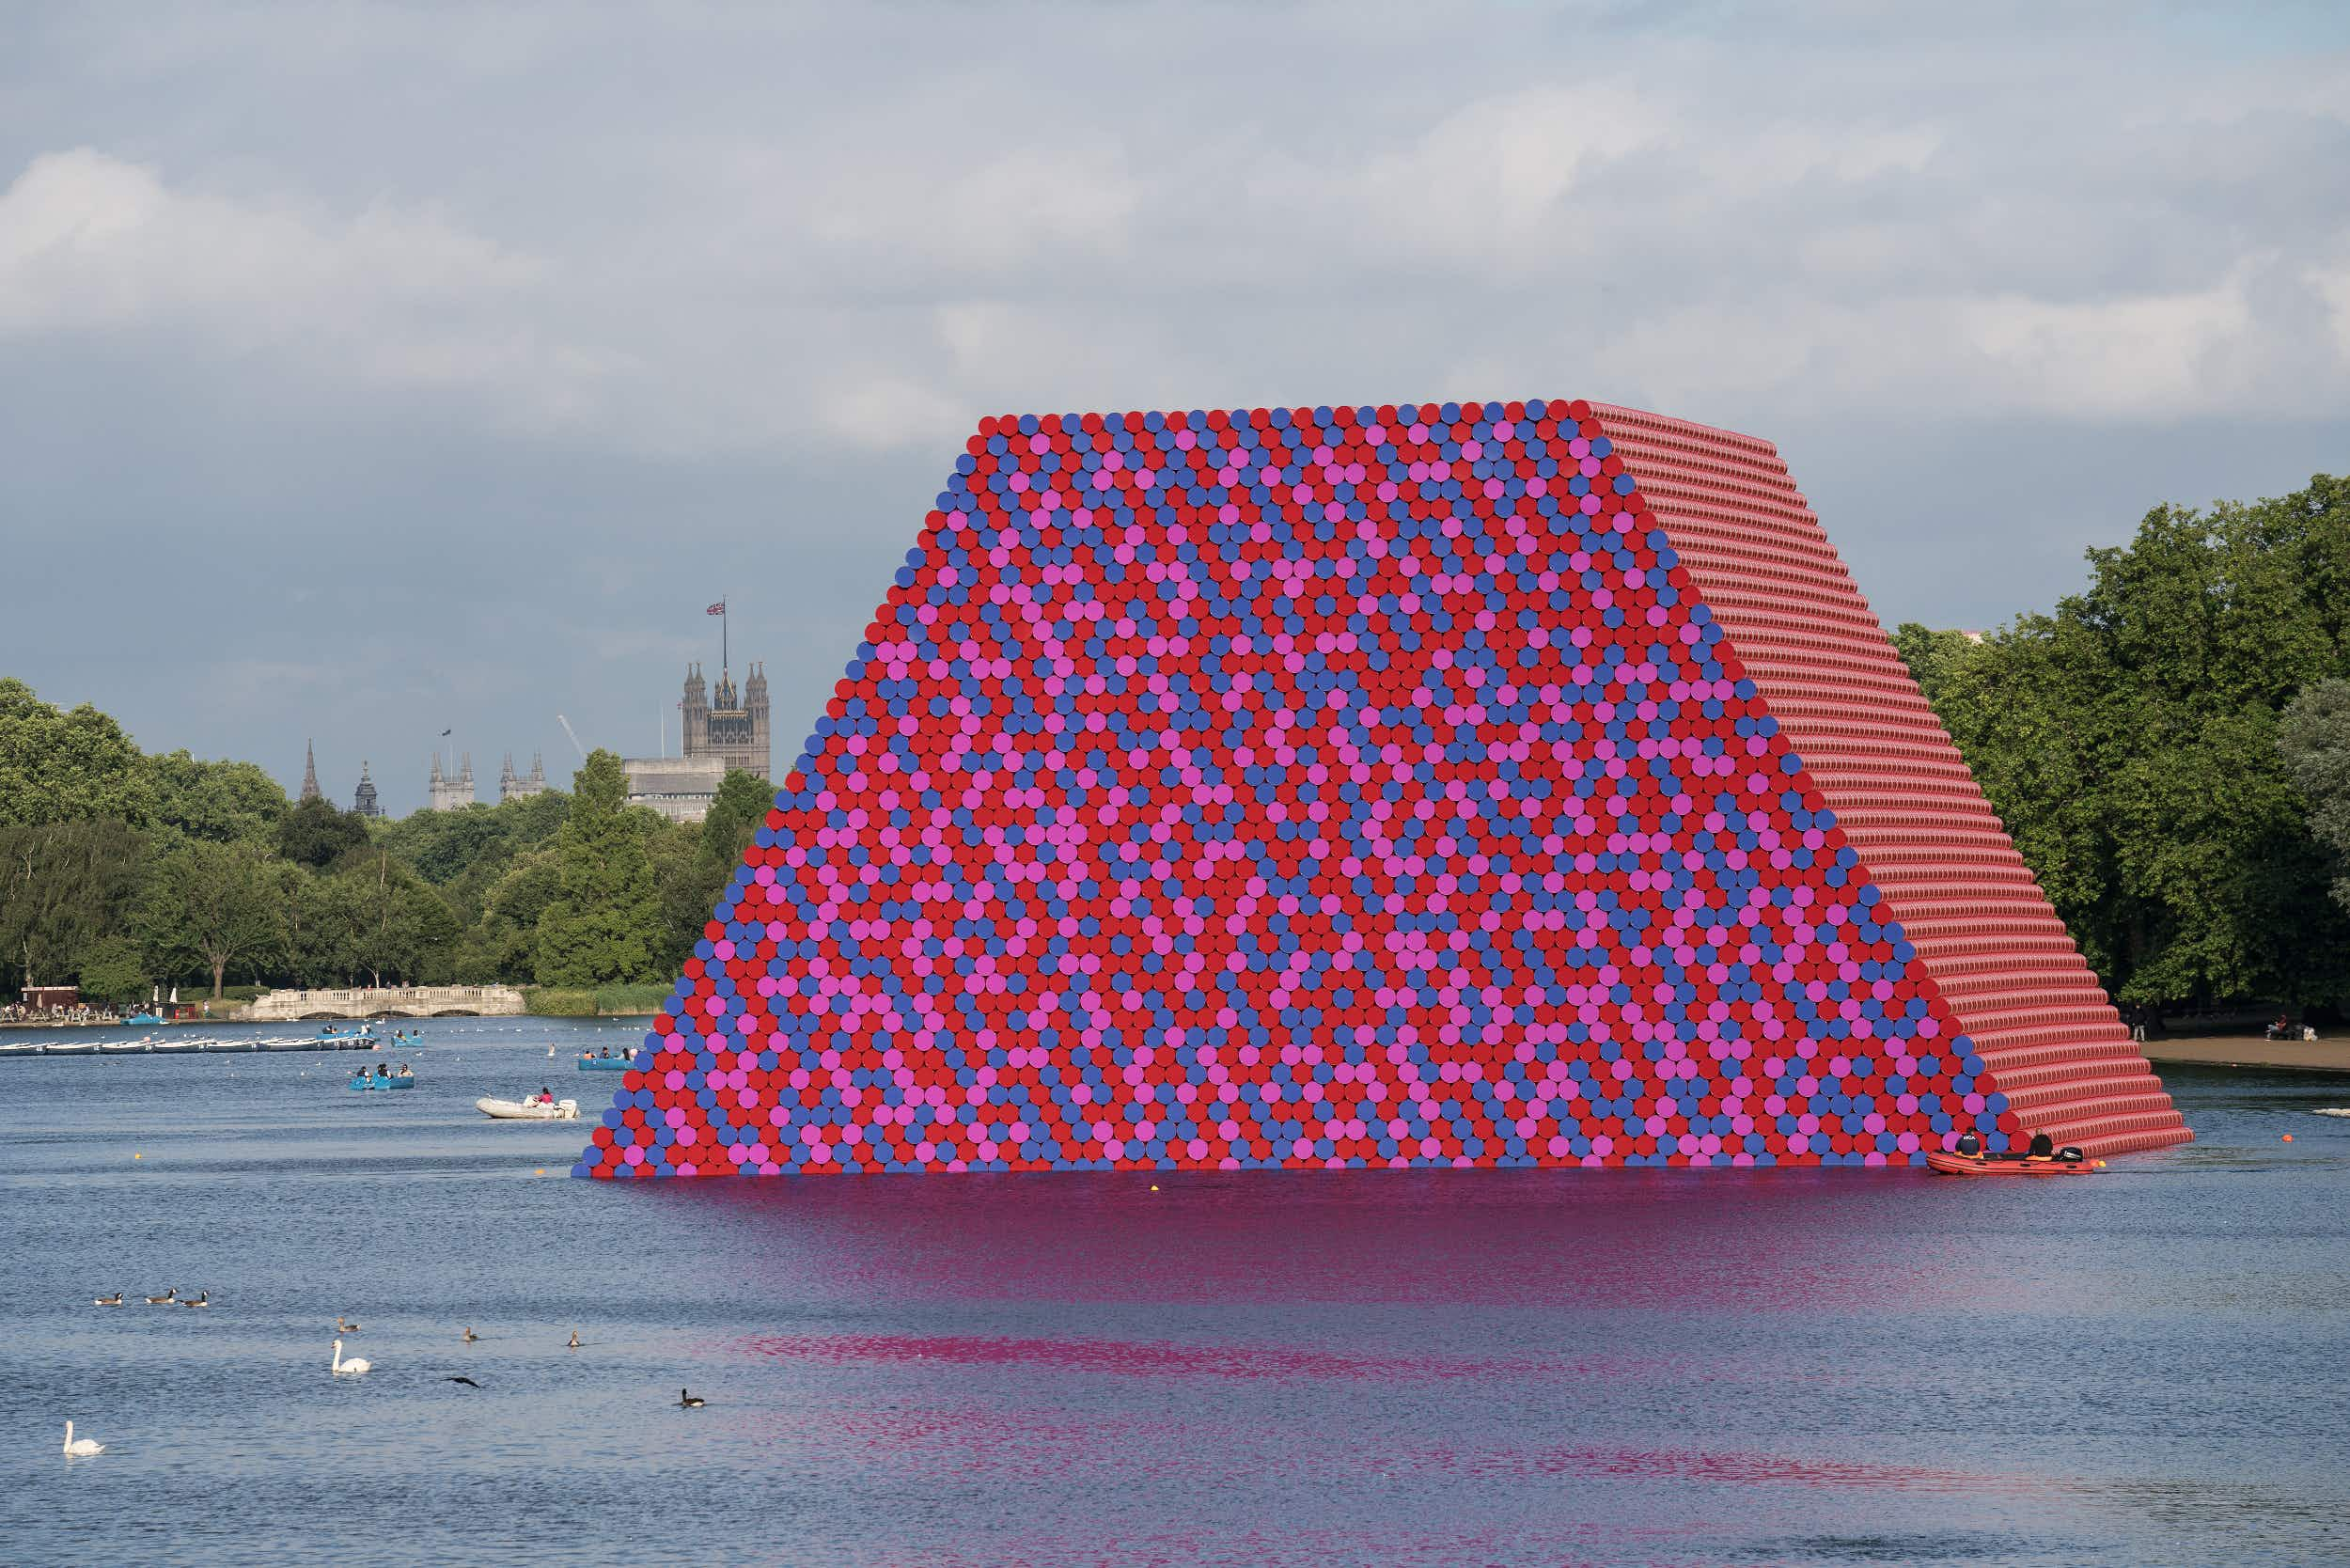 7000 colourful barrels floating on a London lake are brightening up Instagram feeds